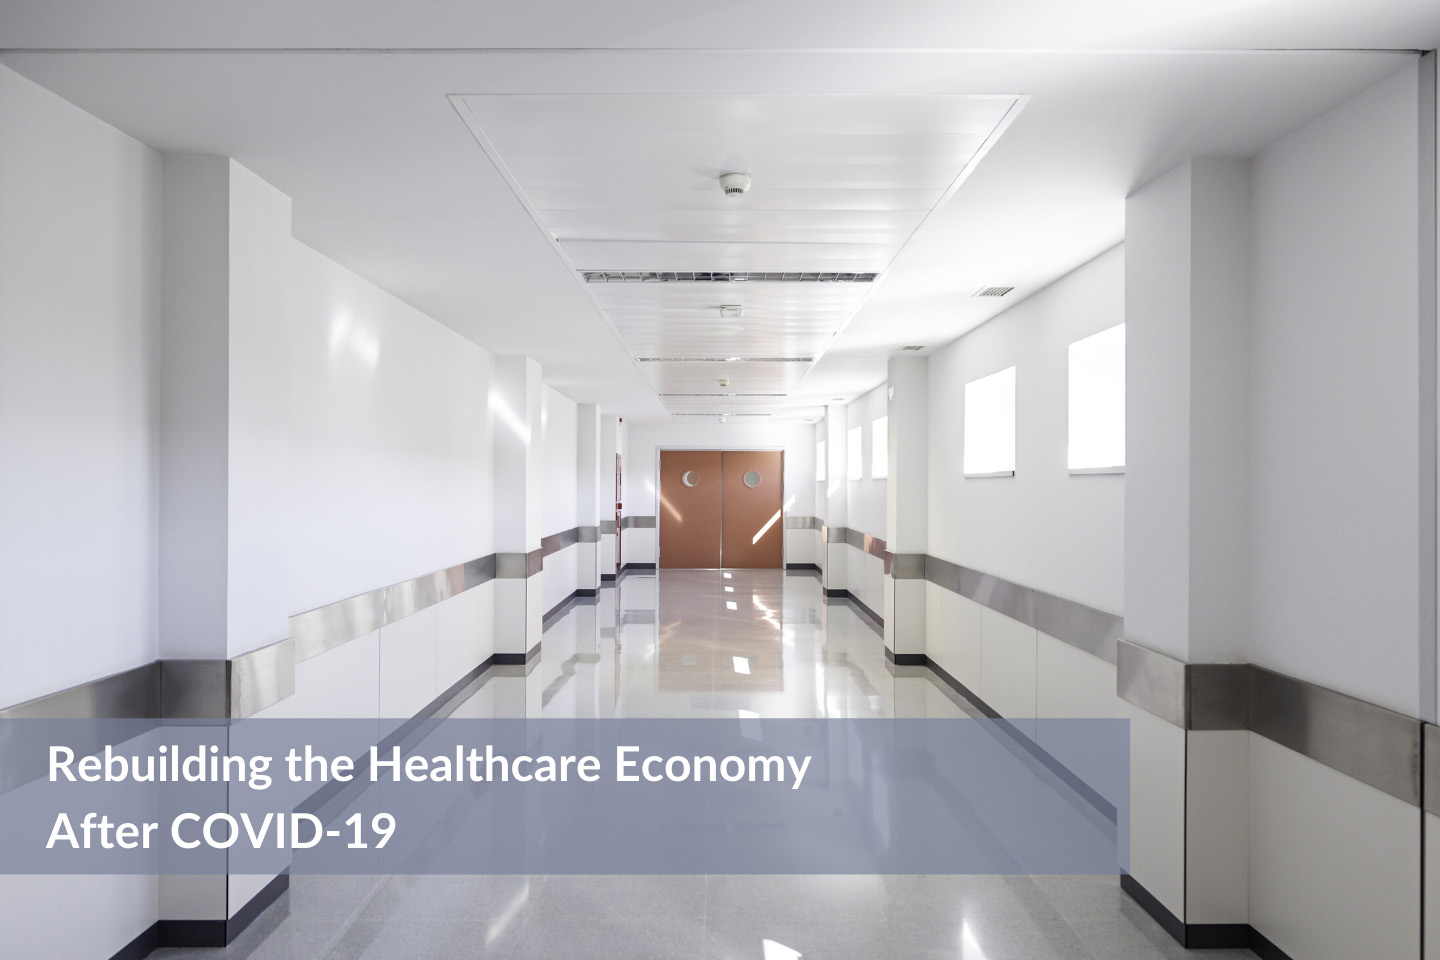 Rebuilding the Healthcare Economy After COVID-19